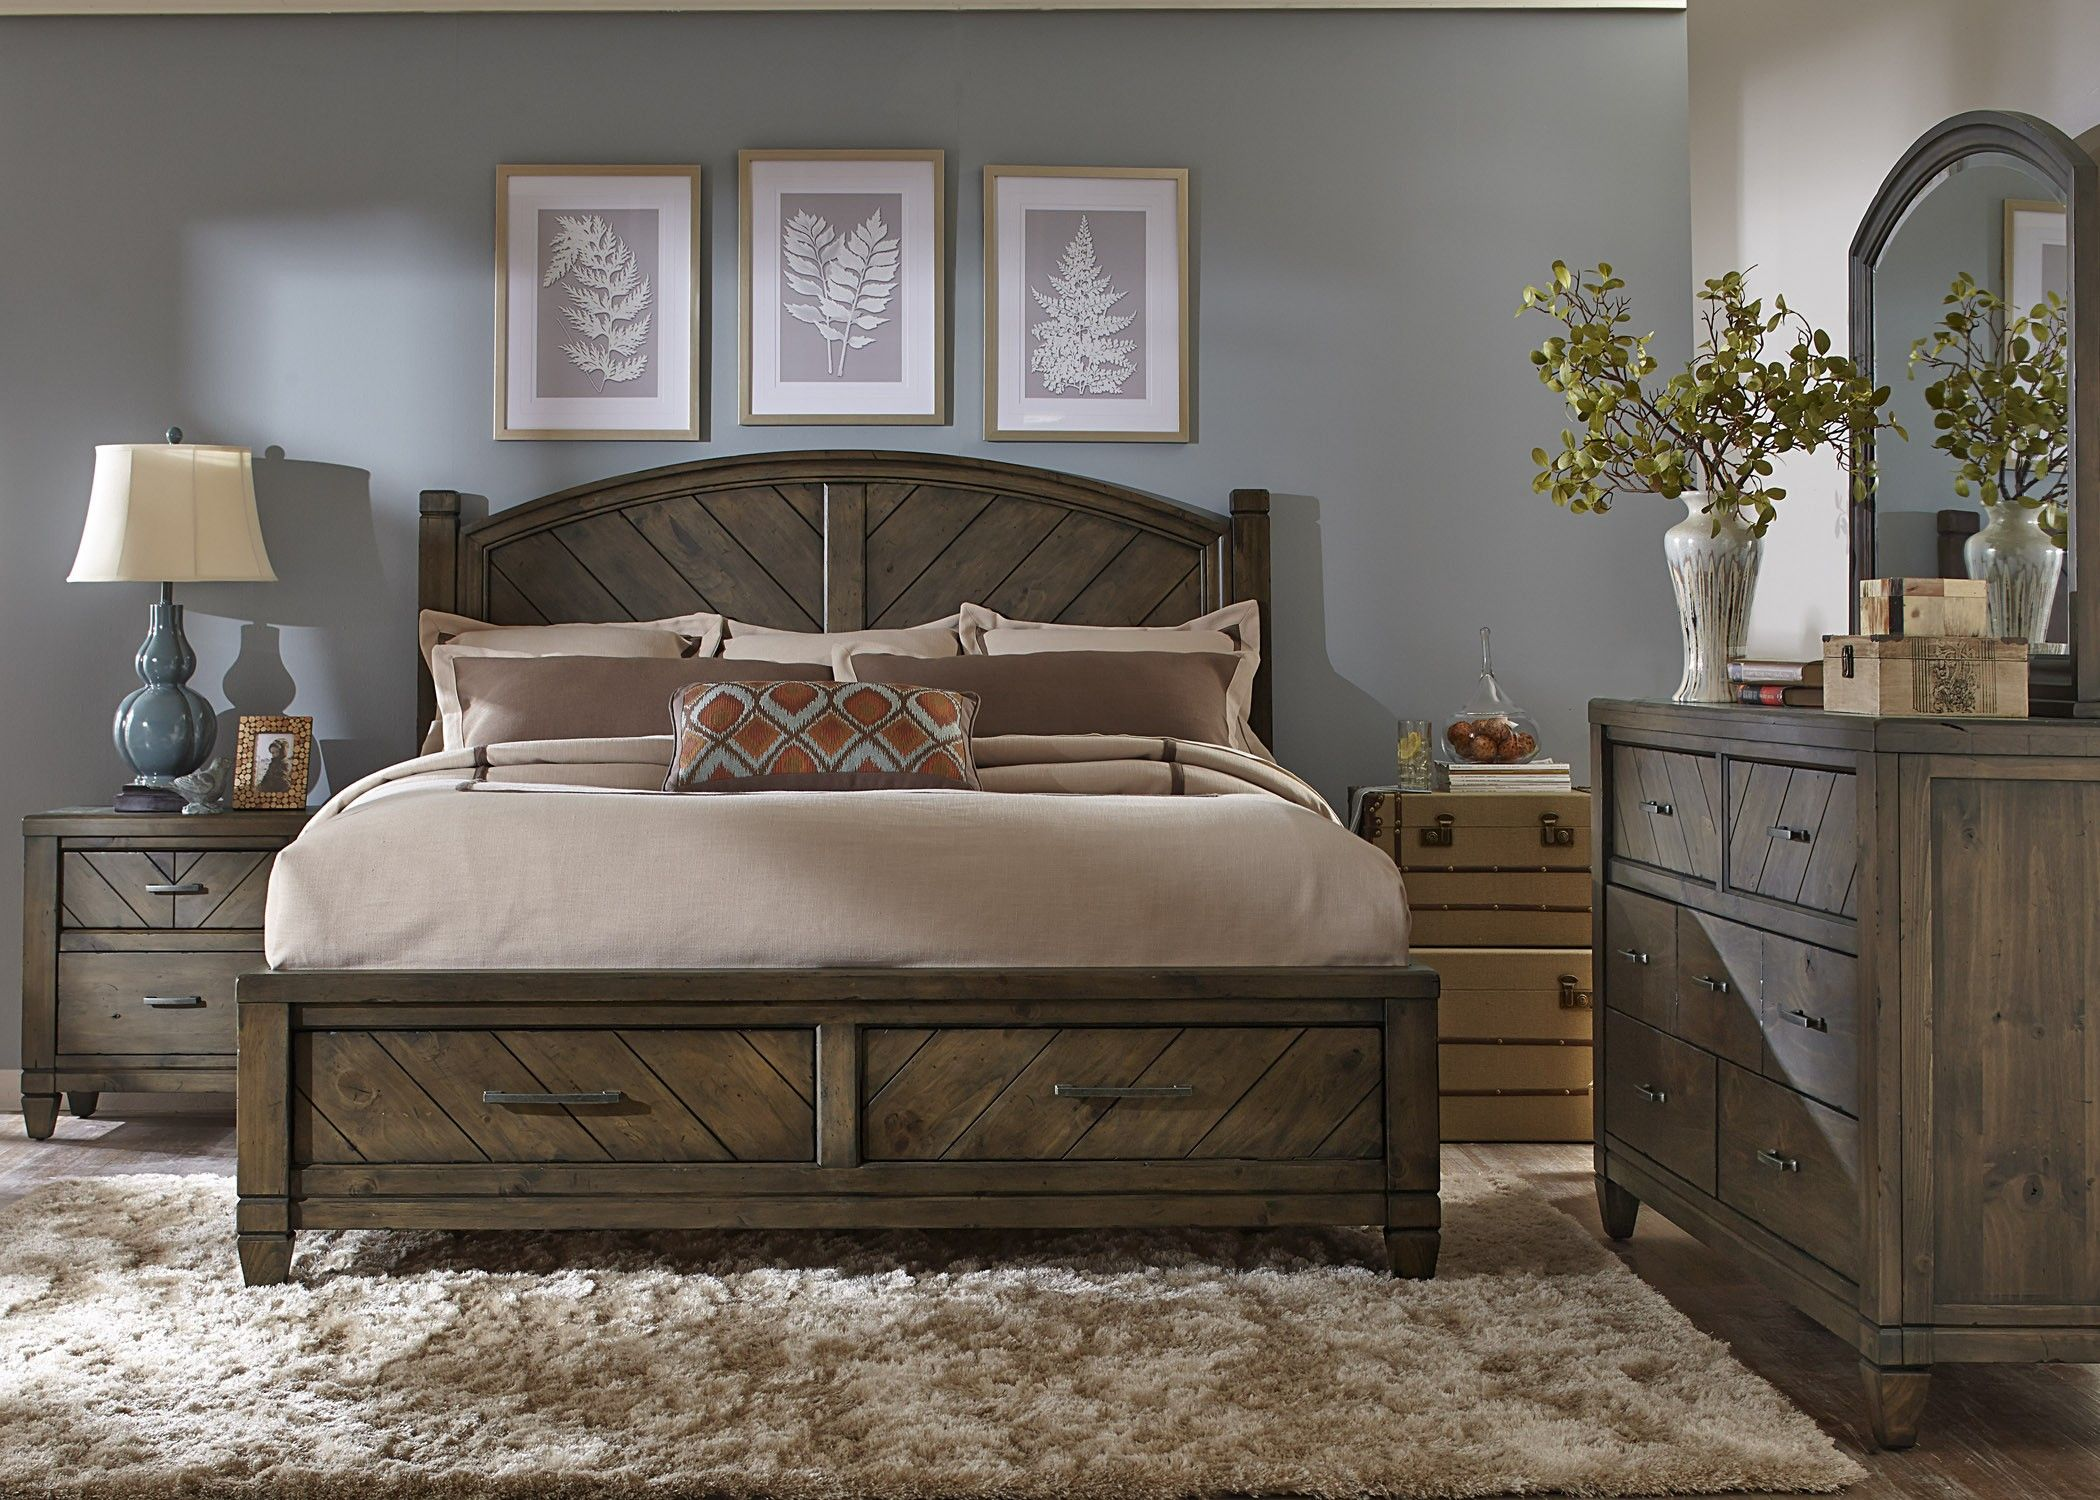 Modern Country Bedroom Set BEDROOM Pinterest Country